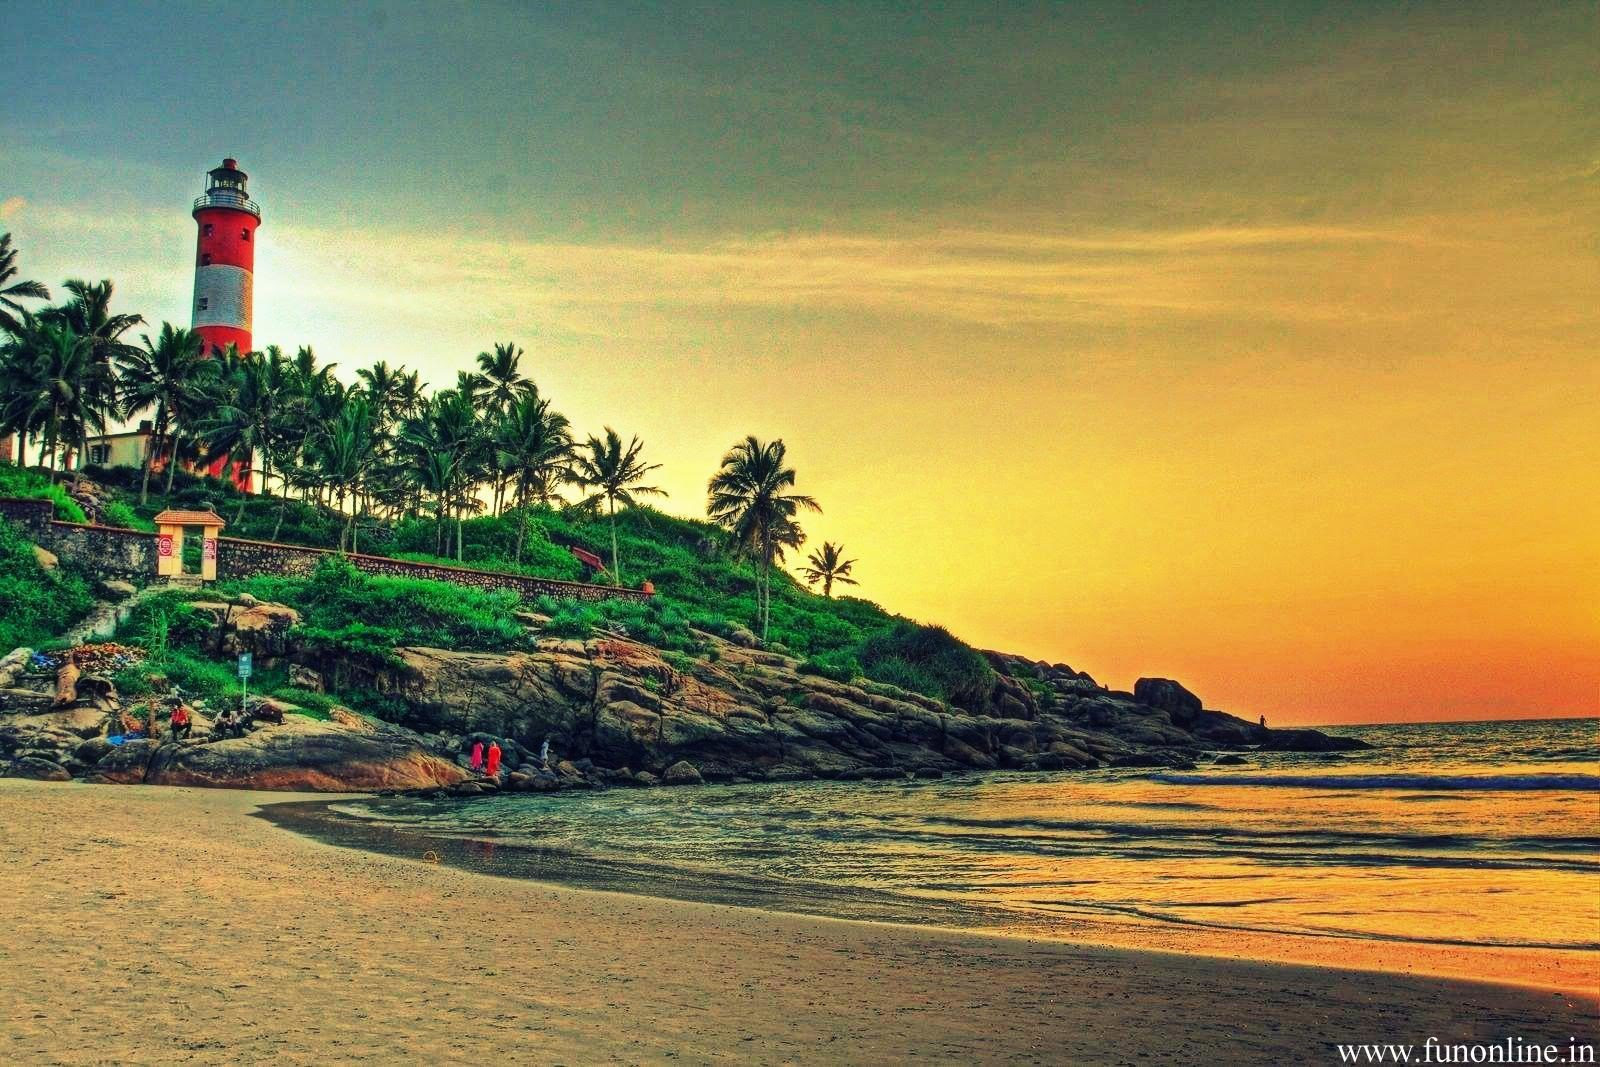 http://www.kerala.me/wp-content/uploads/2016/04/cache/keralas-kovalam-light-house-beach-wallpaper-1-full-thumbx1067.jpg